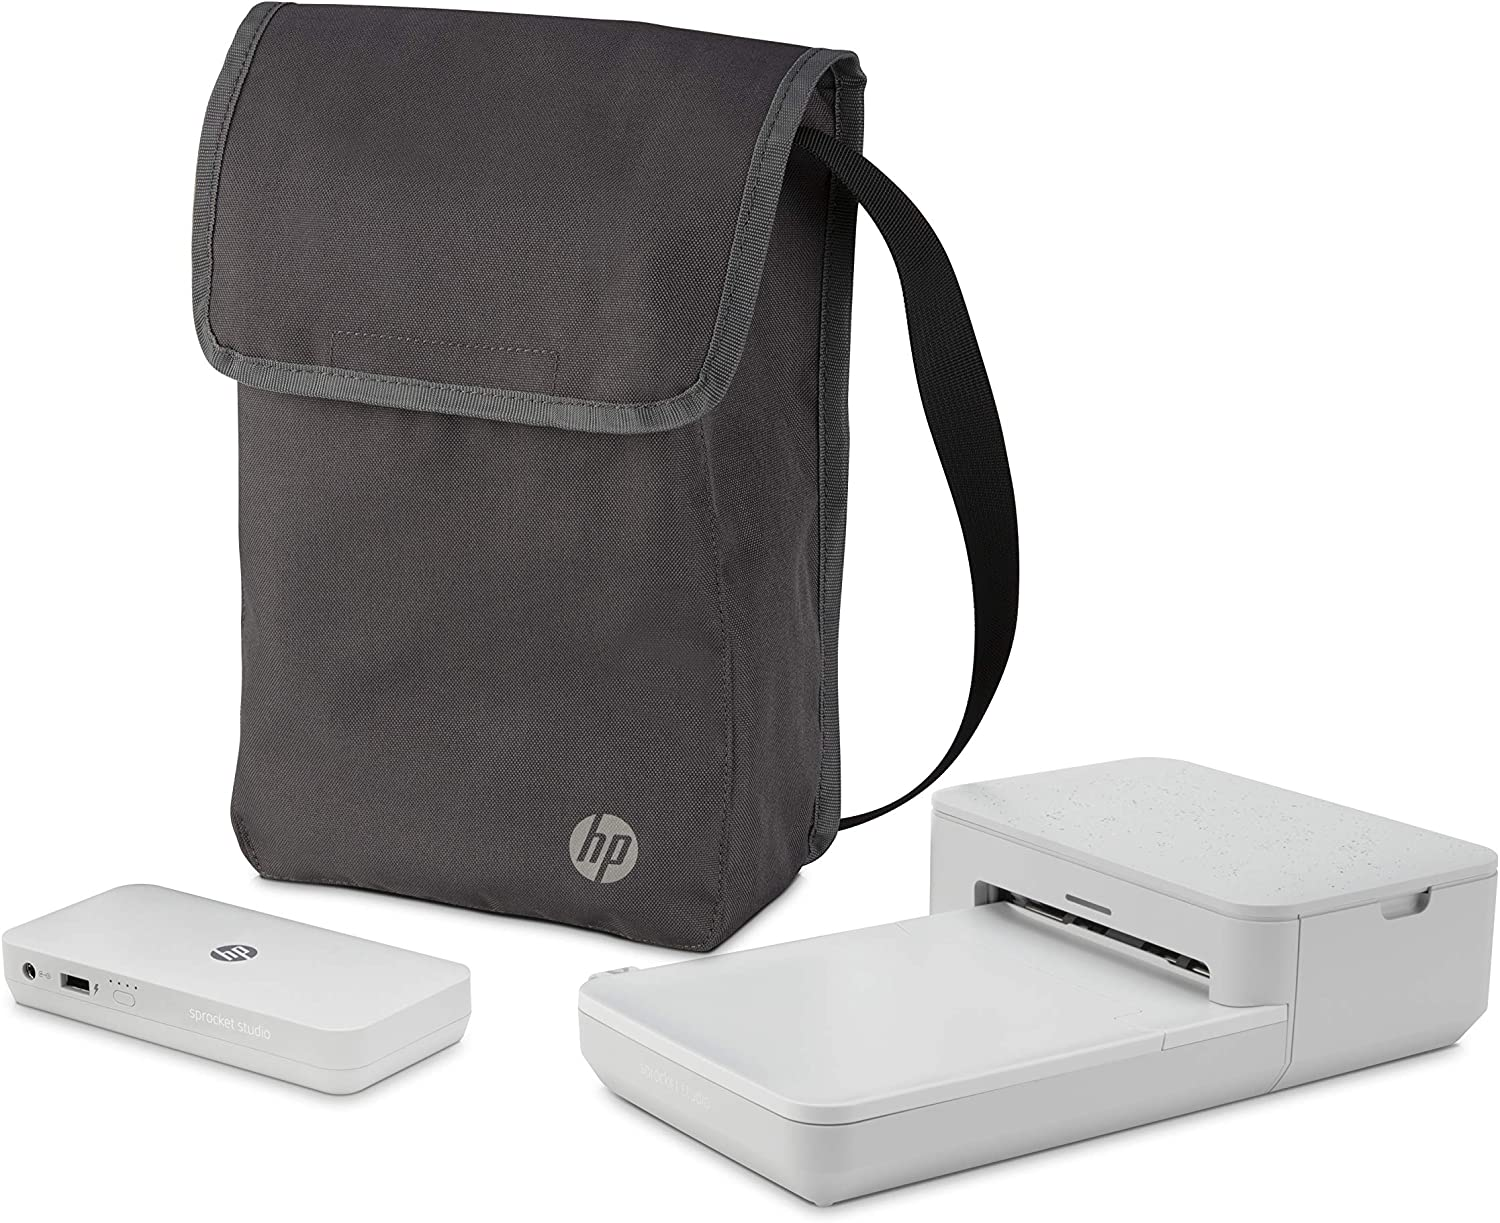 HP Sprocket Studio Go Bundle – Photo Printer with Power Bank Portable Charger & Bag: Personalize & Print 4x6 Pictures Anywhere You Go (3XT68A), 3XT68A#1H6